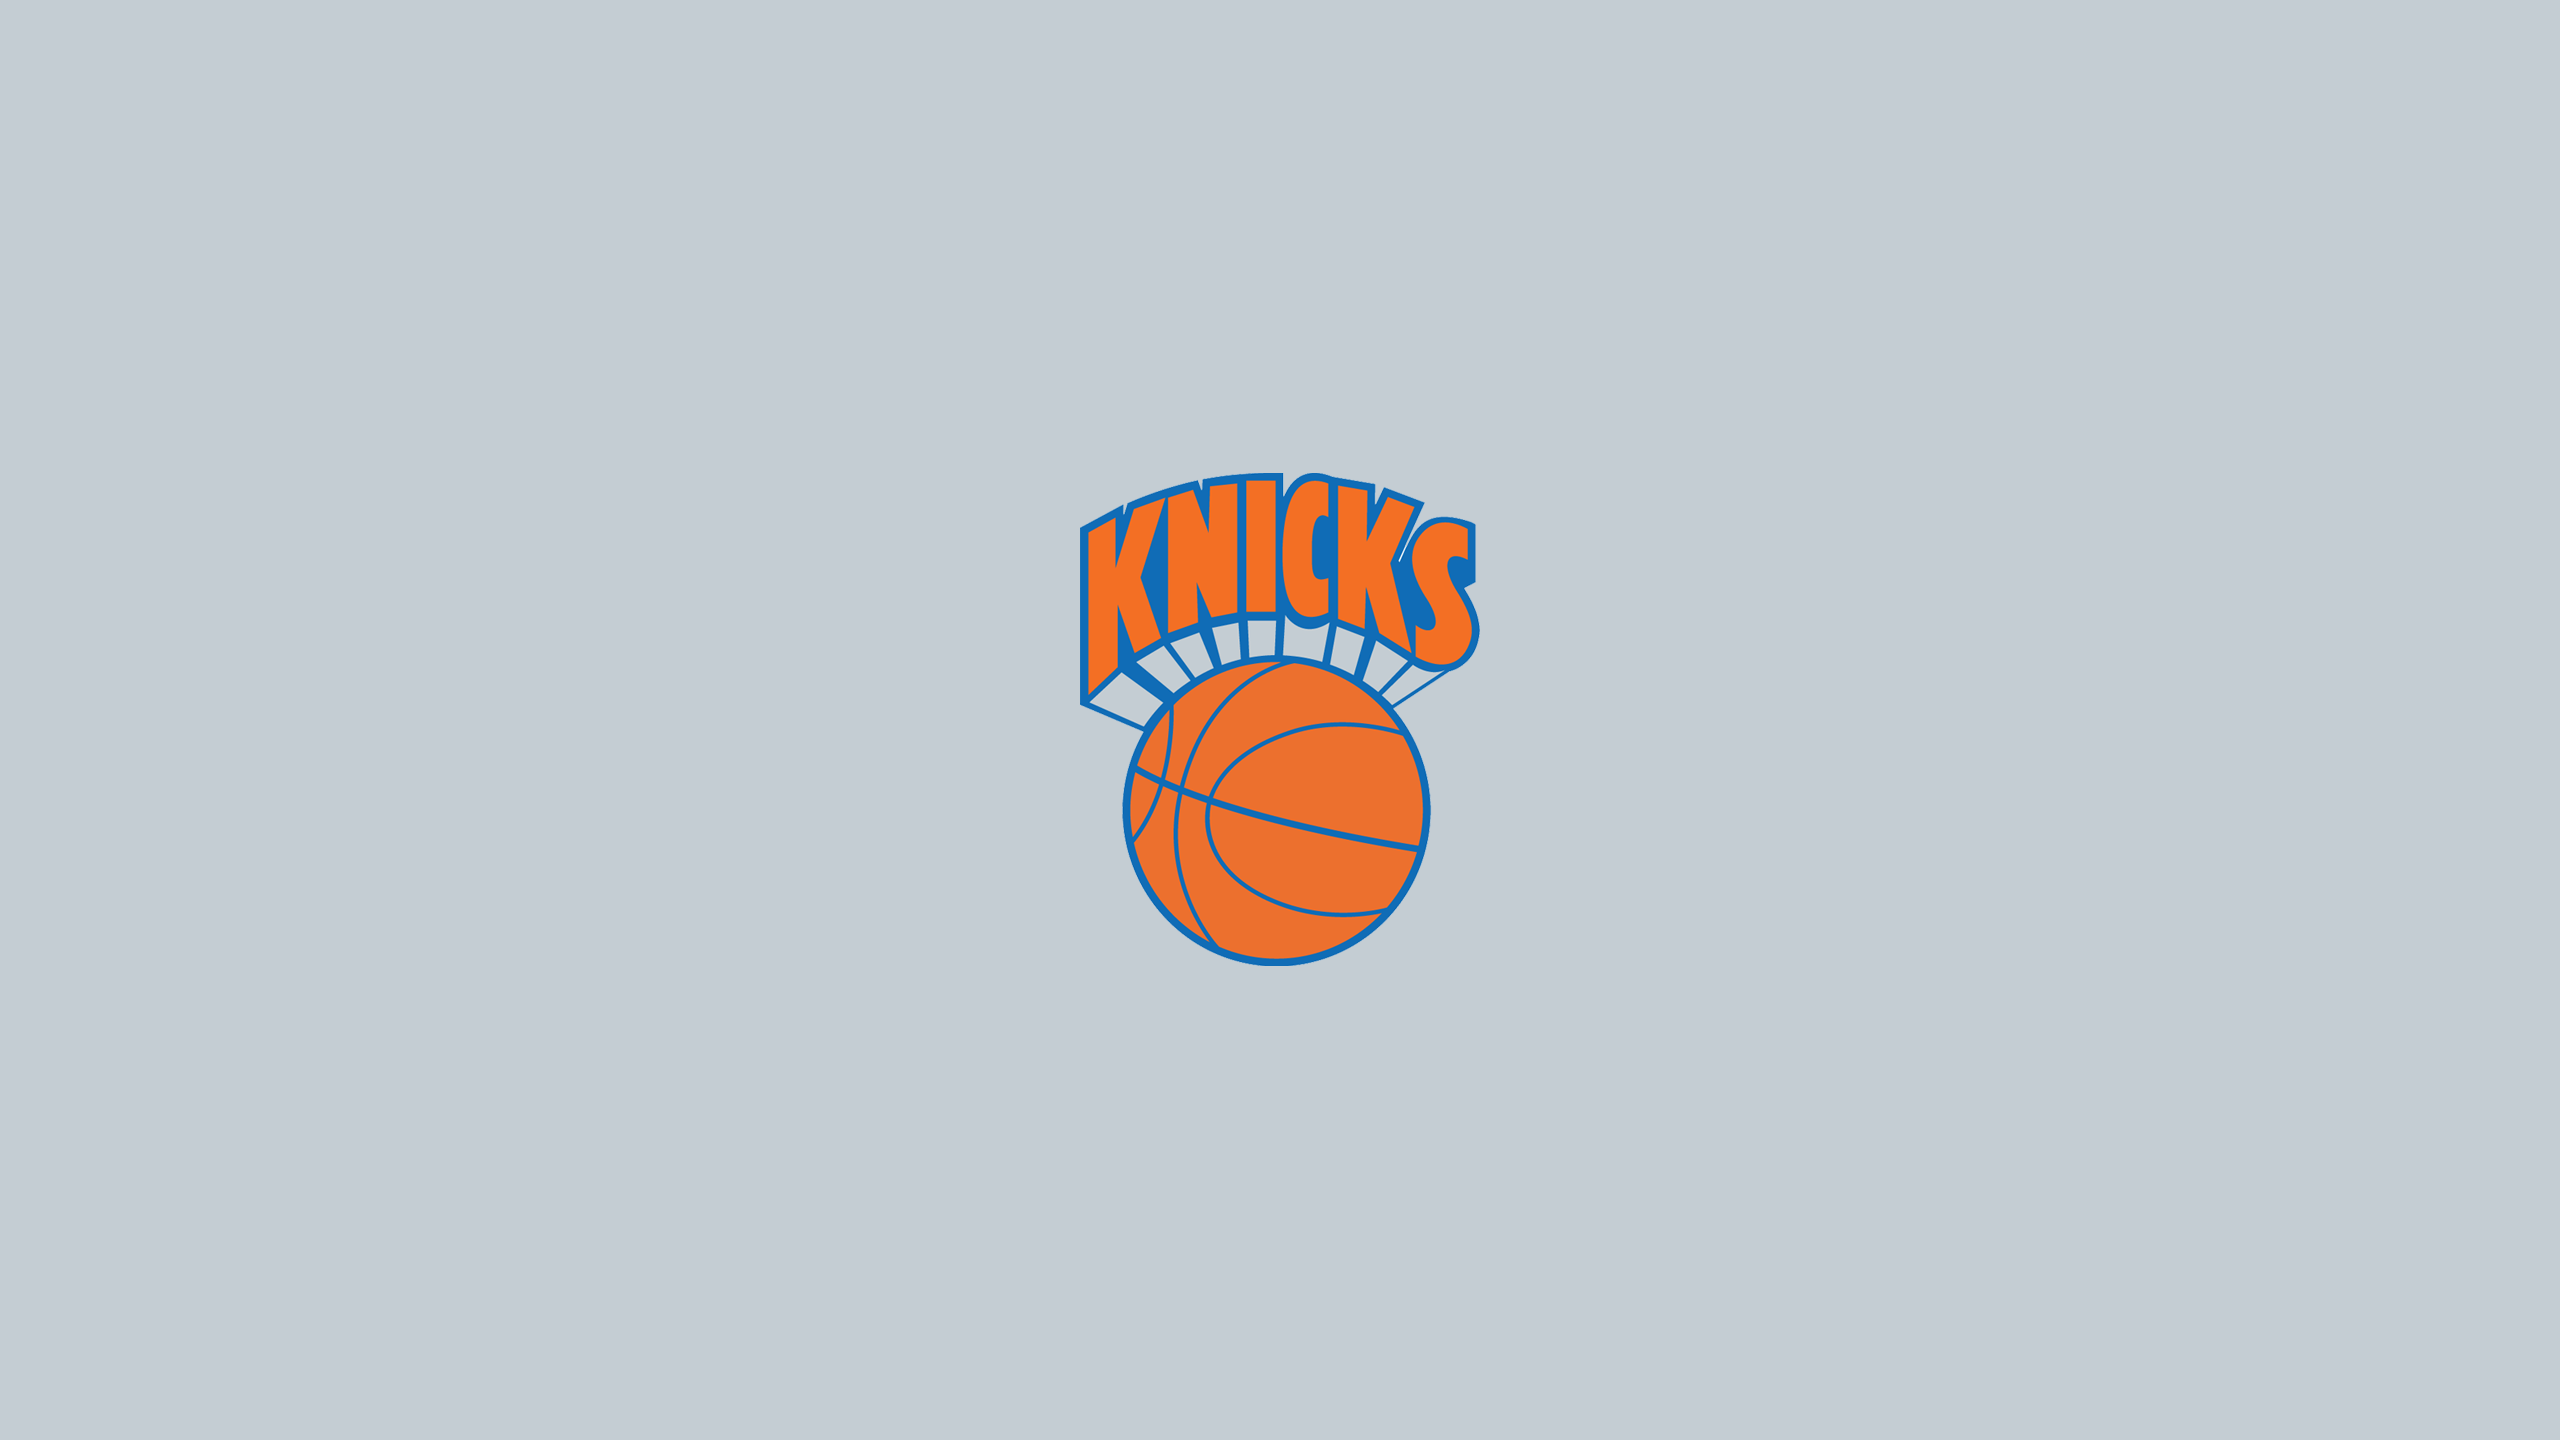 New York Knicks (Old School)